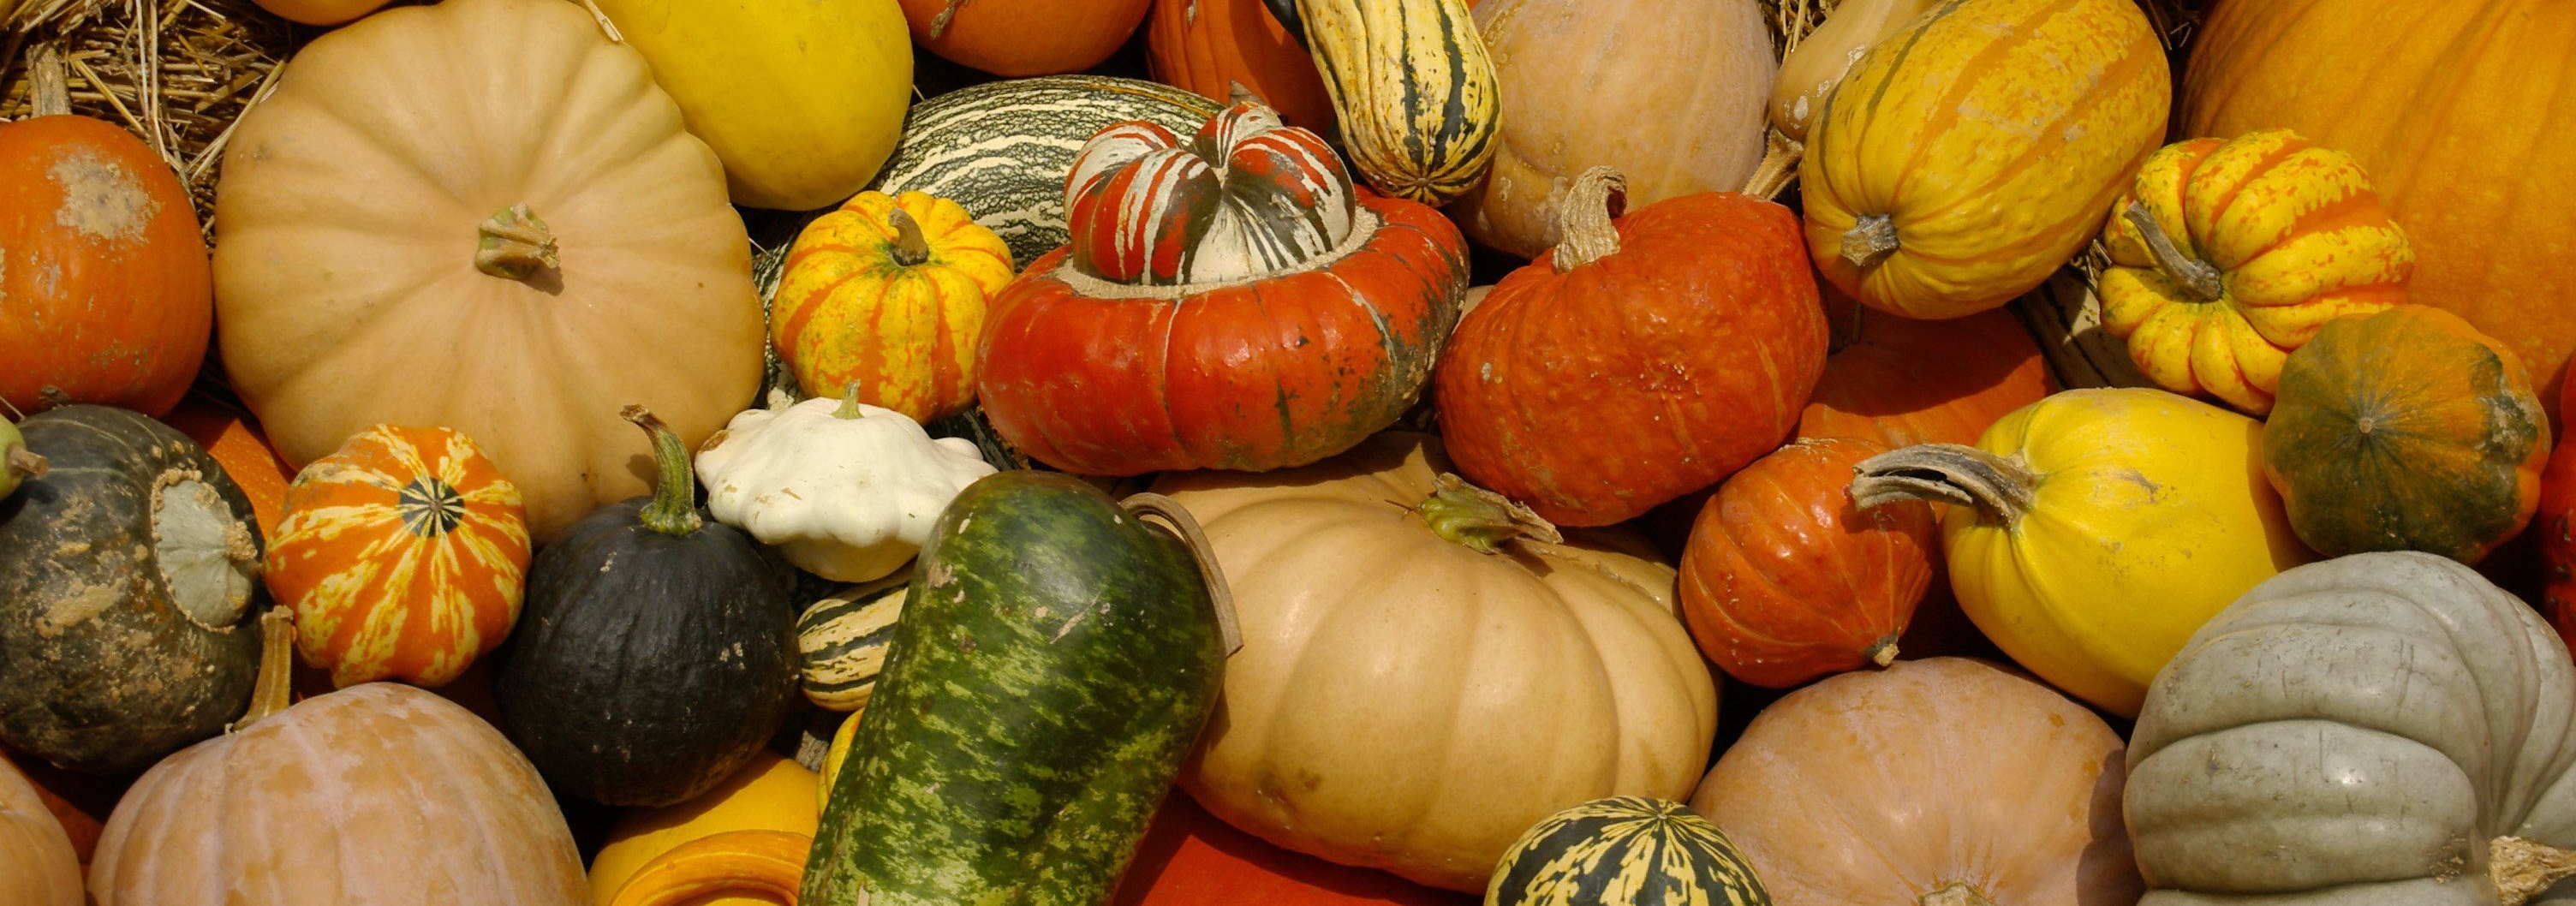 winter-squash-category.jpg